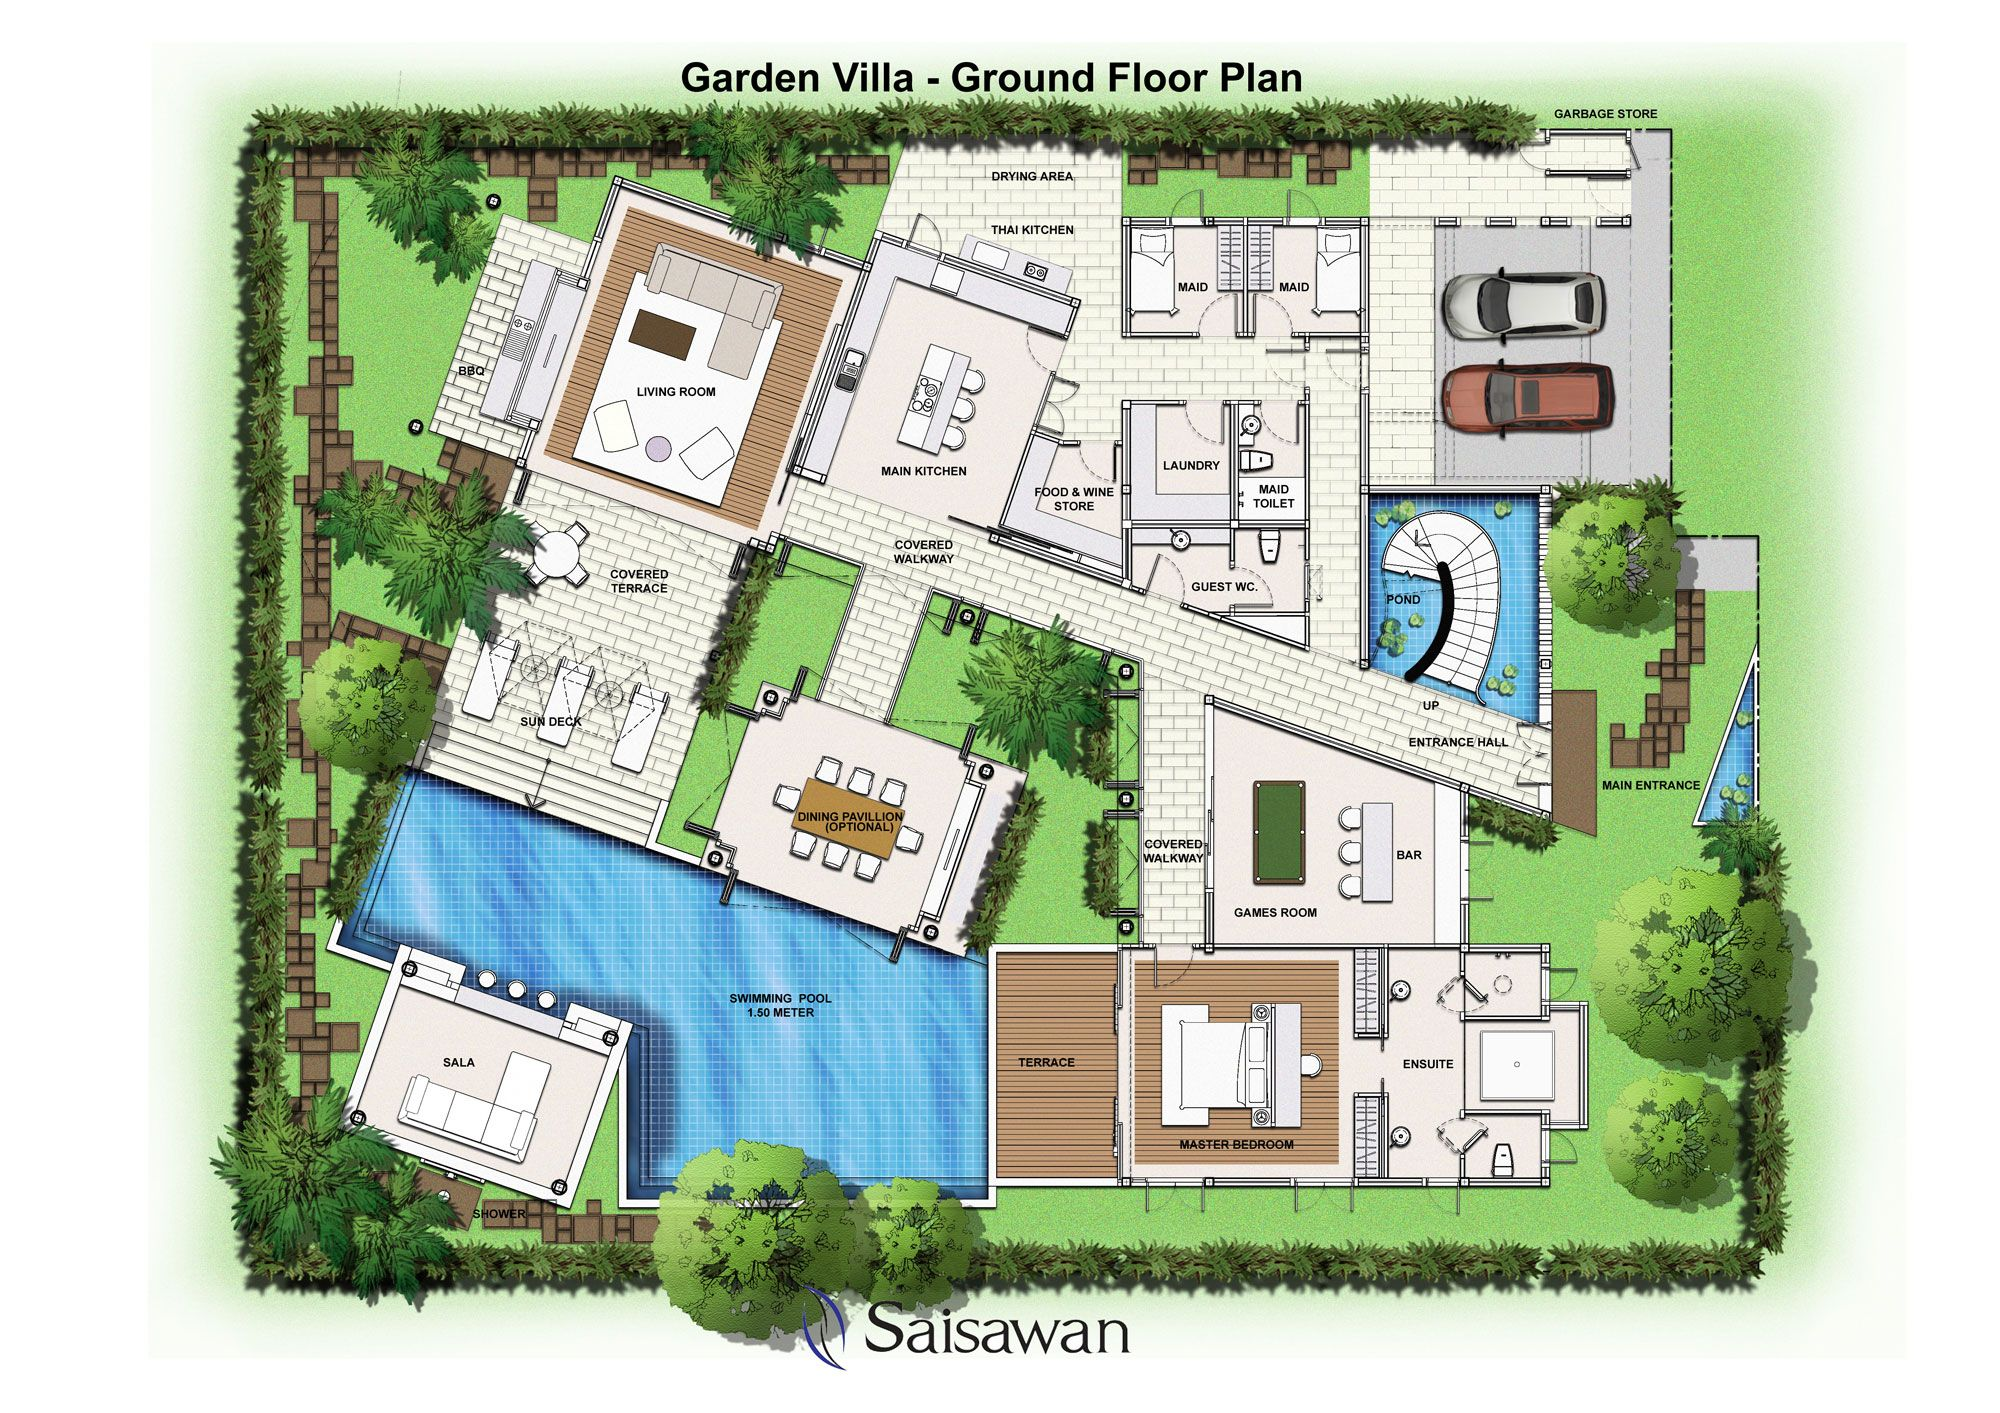 Saisawan garden villas ground floor plan house plans for Pool and garden house plans